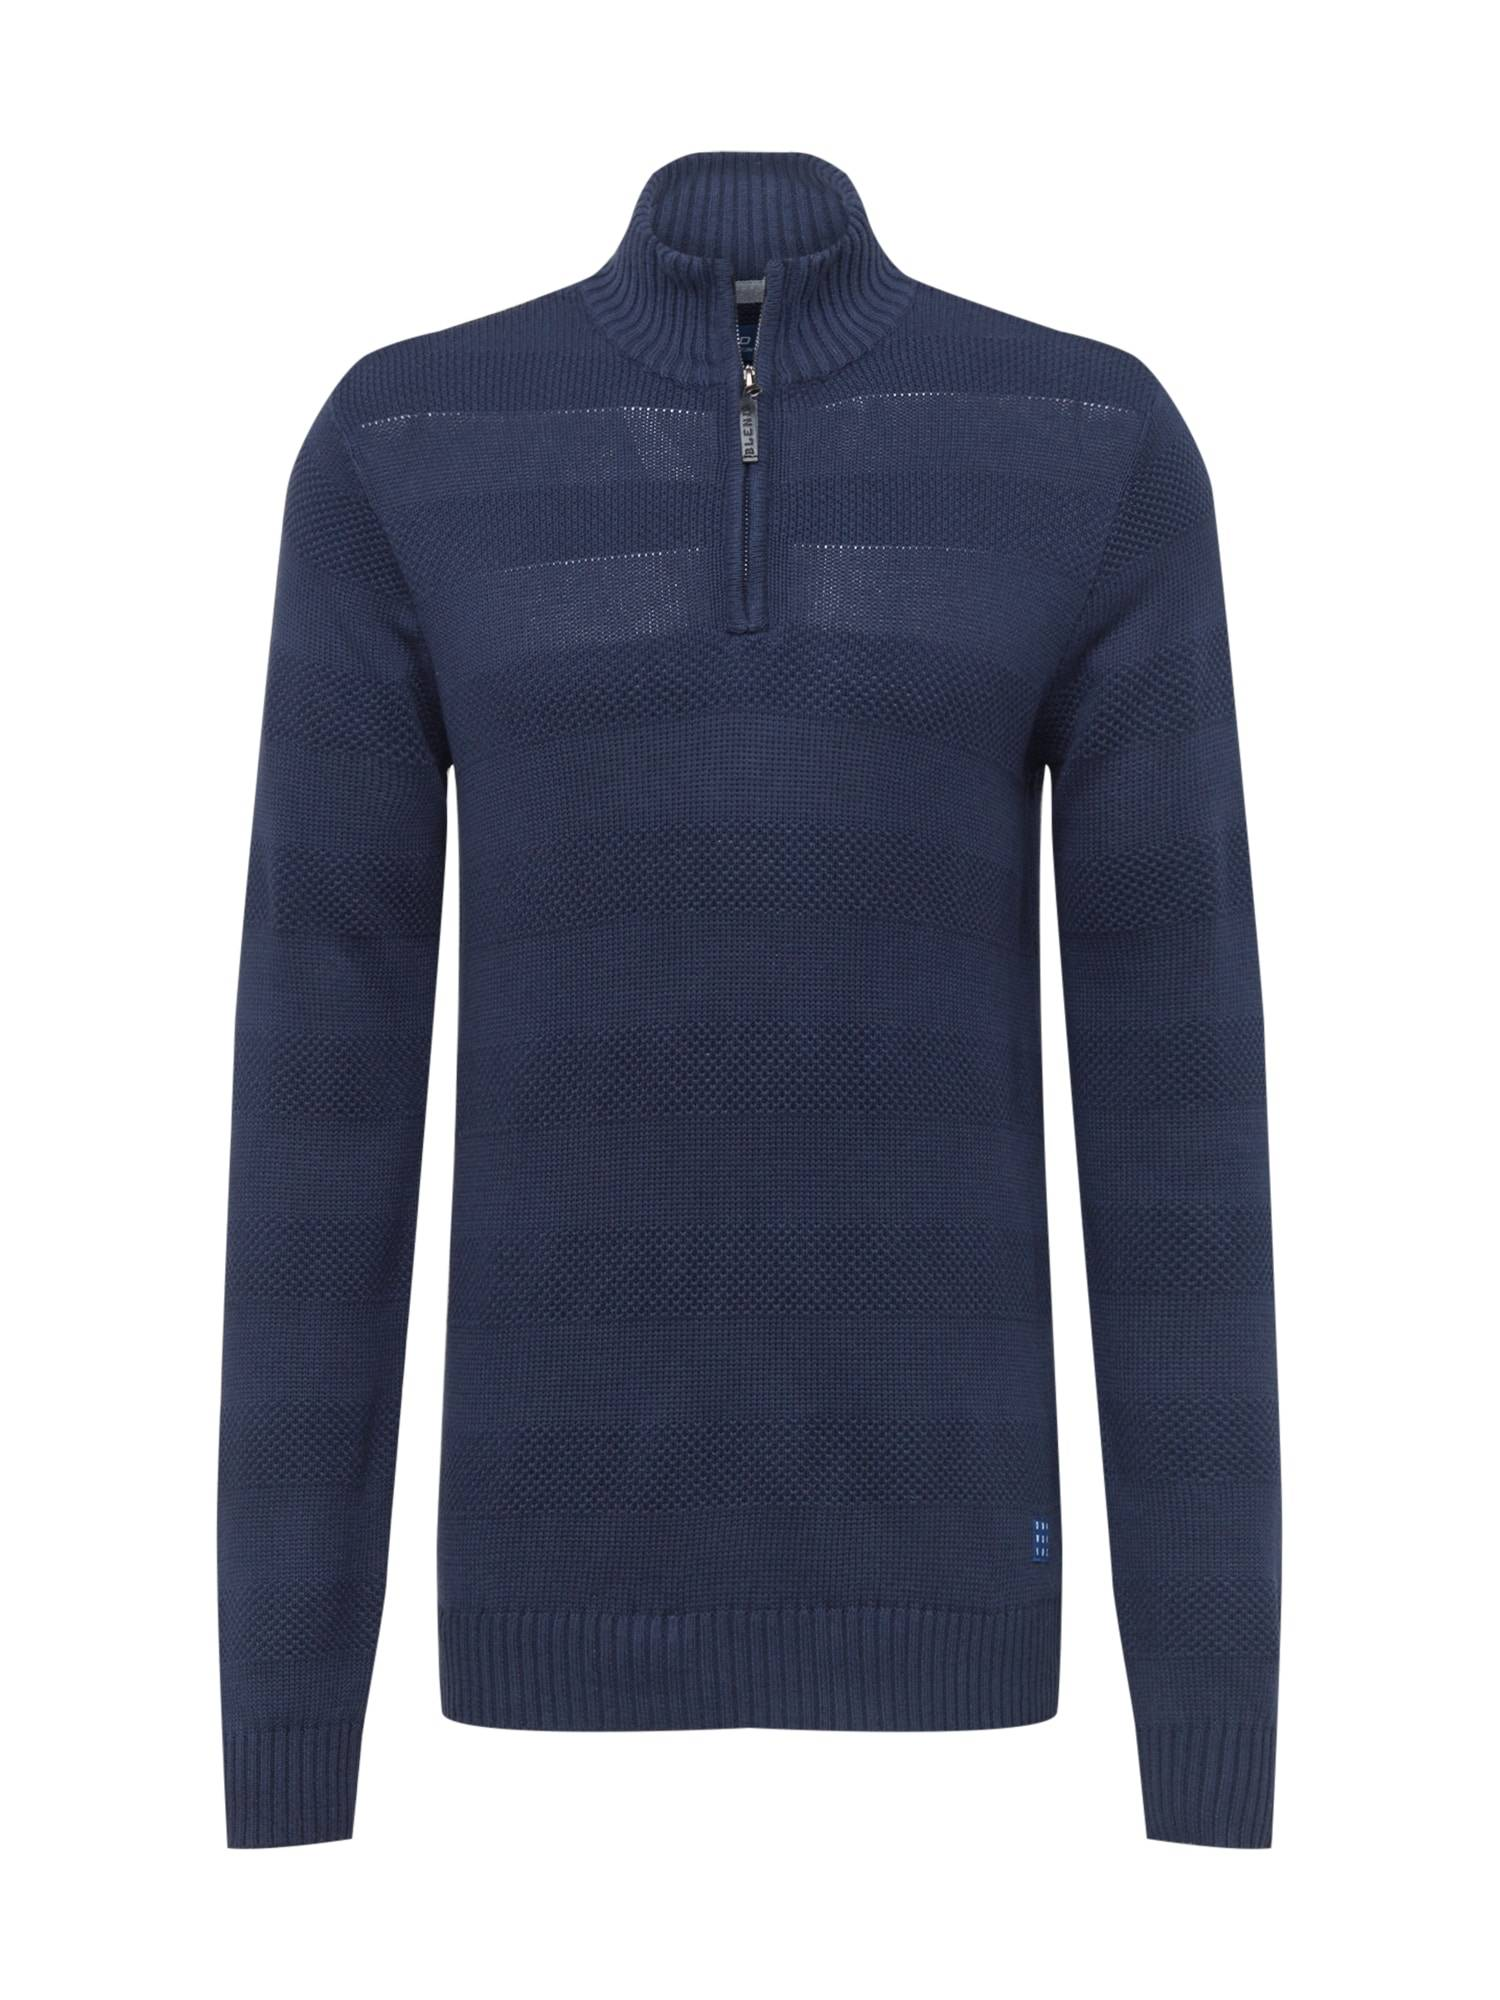 BLEND Pull-over 'Nantes'  - Bleu - Taille: L - male